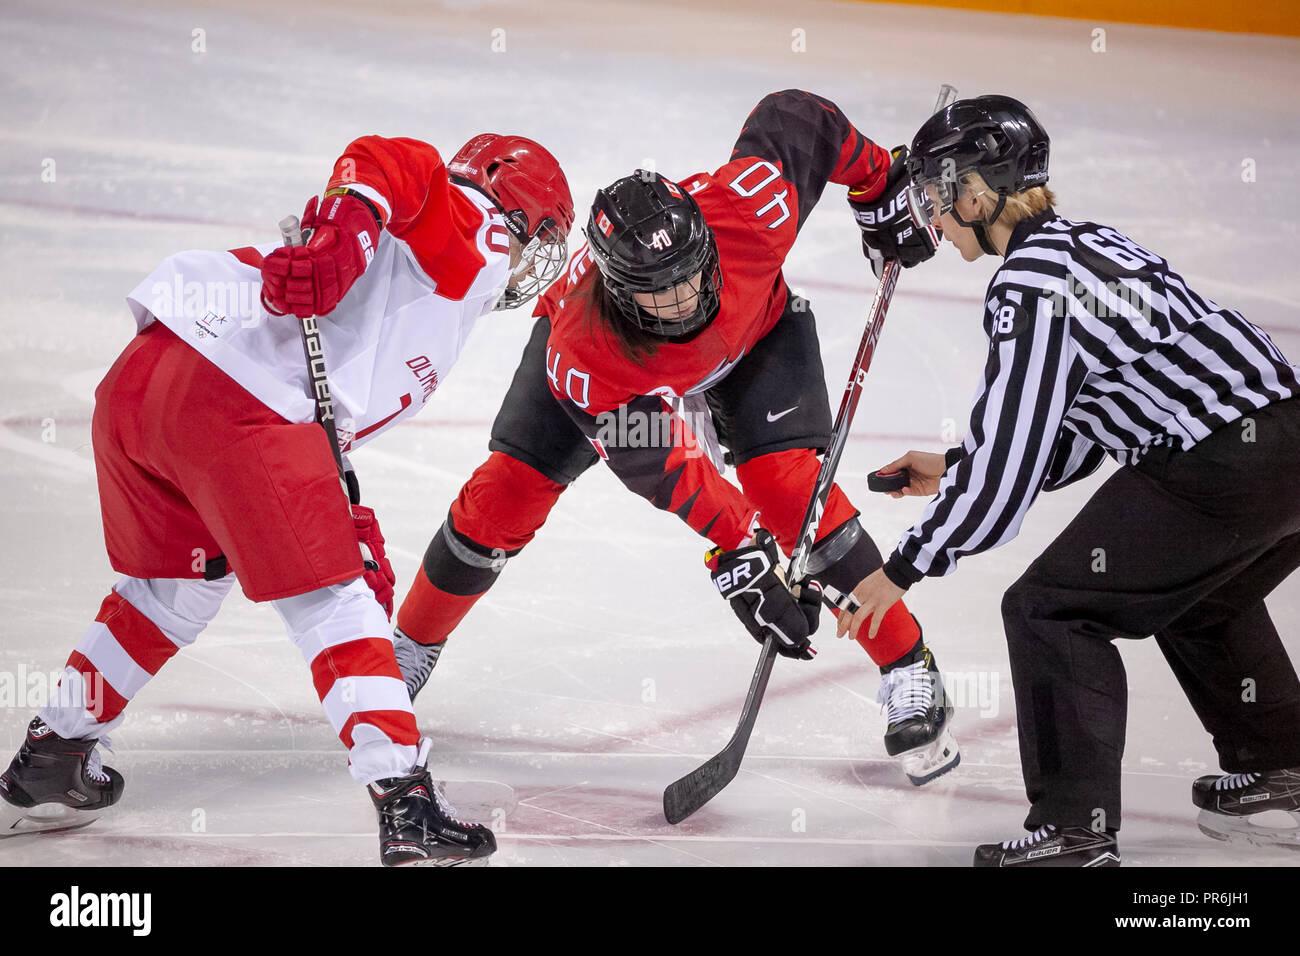 Liudmila Belyakova (OAR) and Blayre Turnbull (CAN) faceoff during Team OAR vs Team Cananda competing in Women's hockey at the Olympic Winter Games Pye - Stock Image